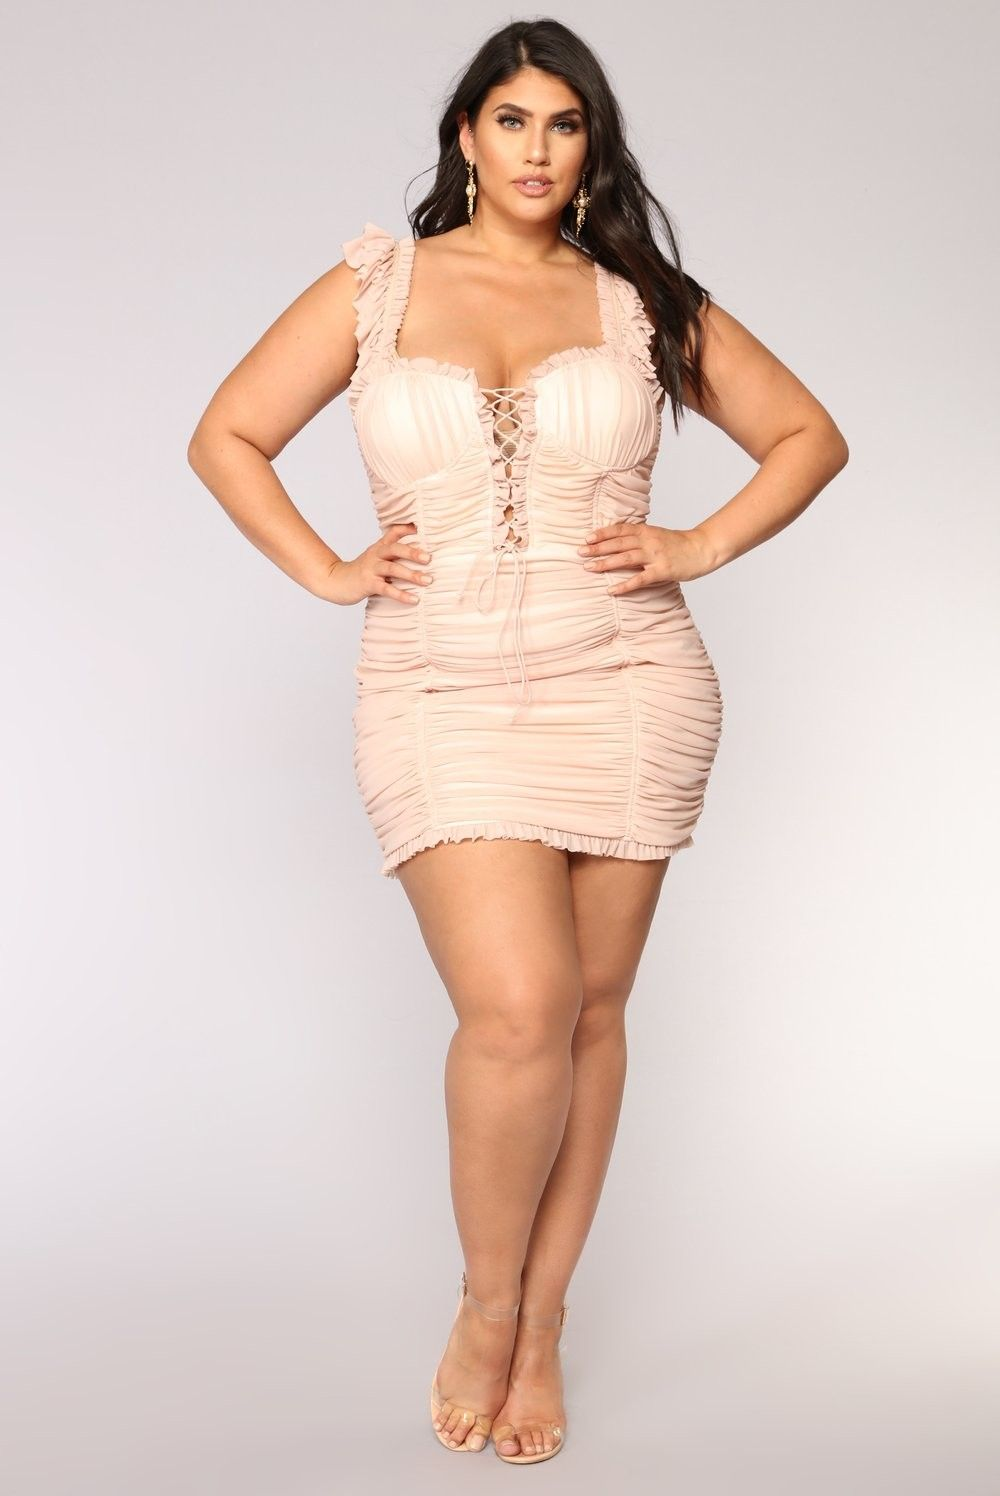 de599f66f4 Plus Size Ruff Around The Edges Ruched Dress - Mauve  54.99  fashion  ootd   outfit  oufits  moda  plussize  dress  dresses  plussizeclothing   plussizedress ...